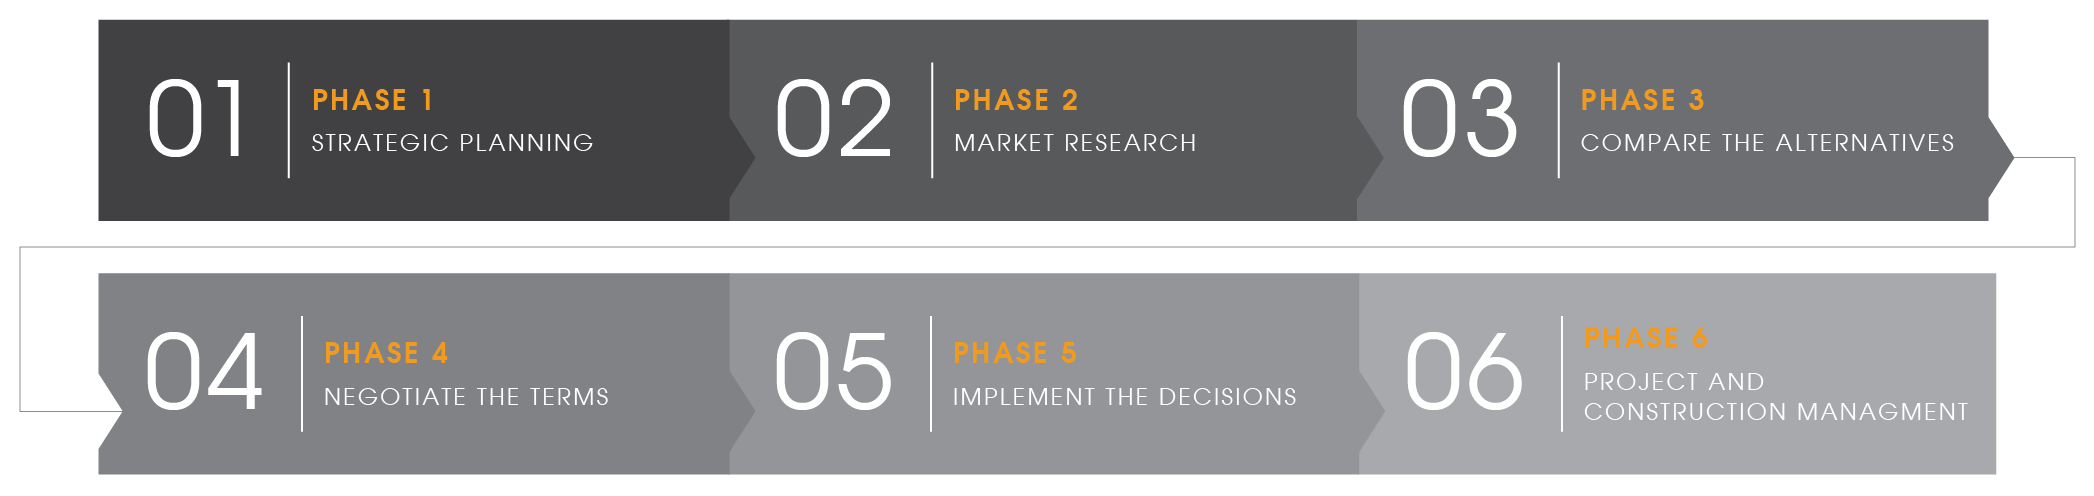 axis_Phases_Infographic_72dpi-01